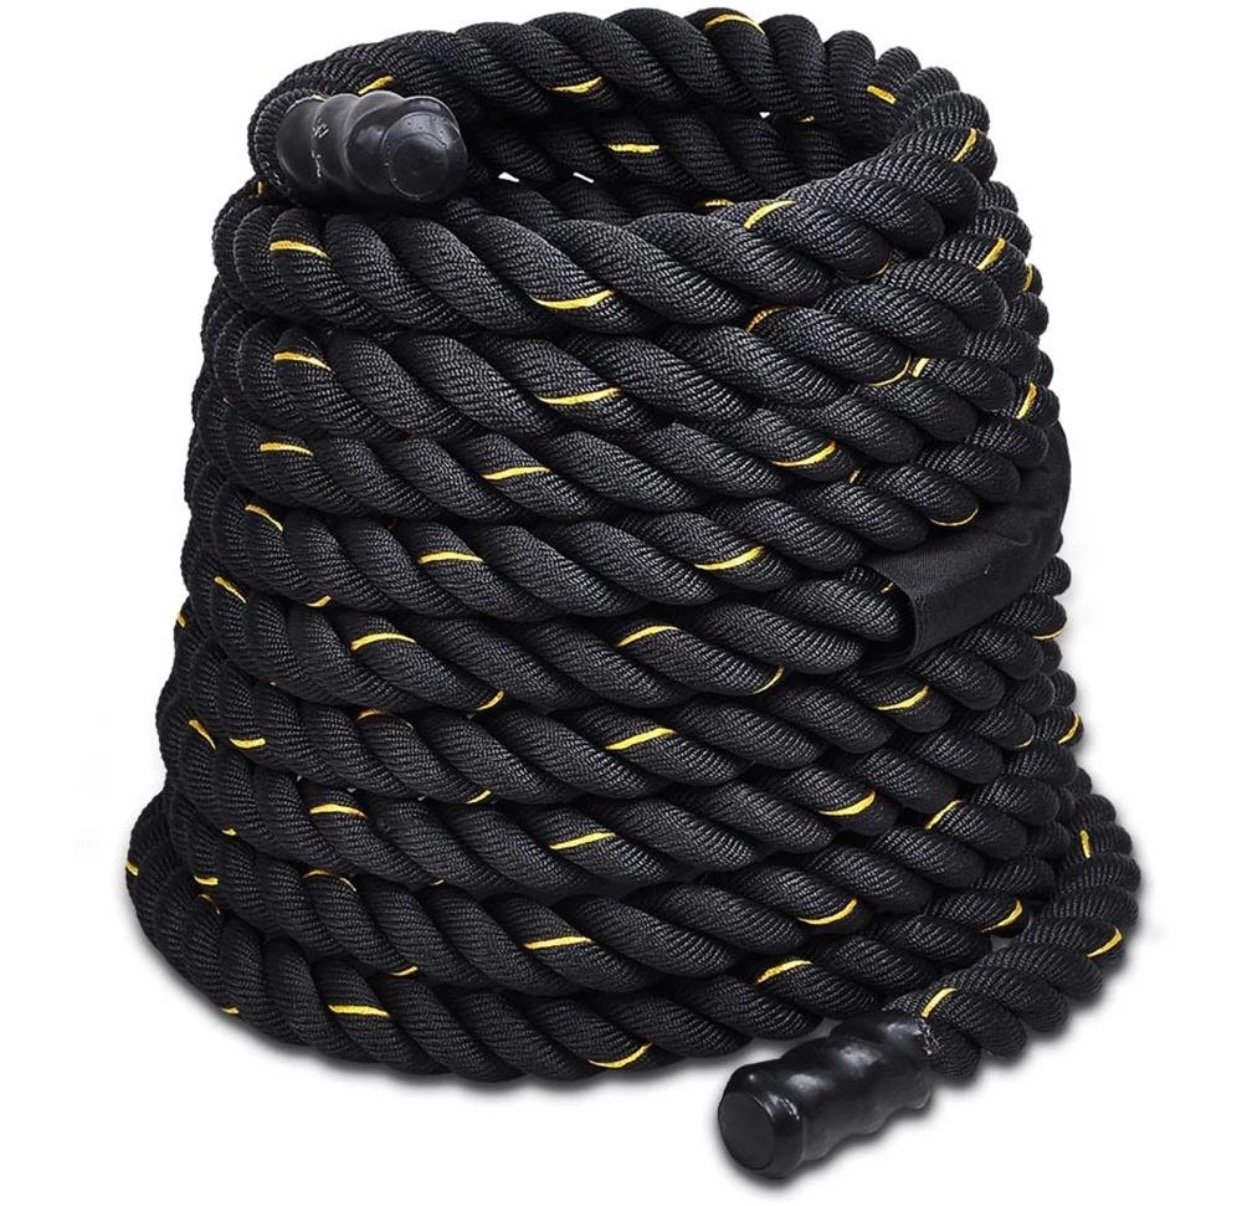 1.5inch*40foot Crossfit Gym Training Battle Rope Power Rope